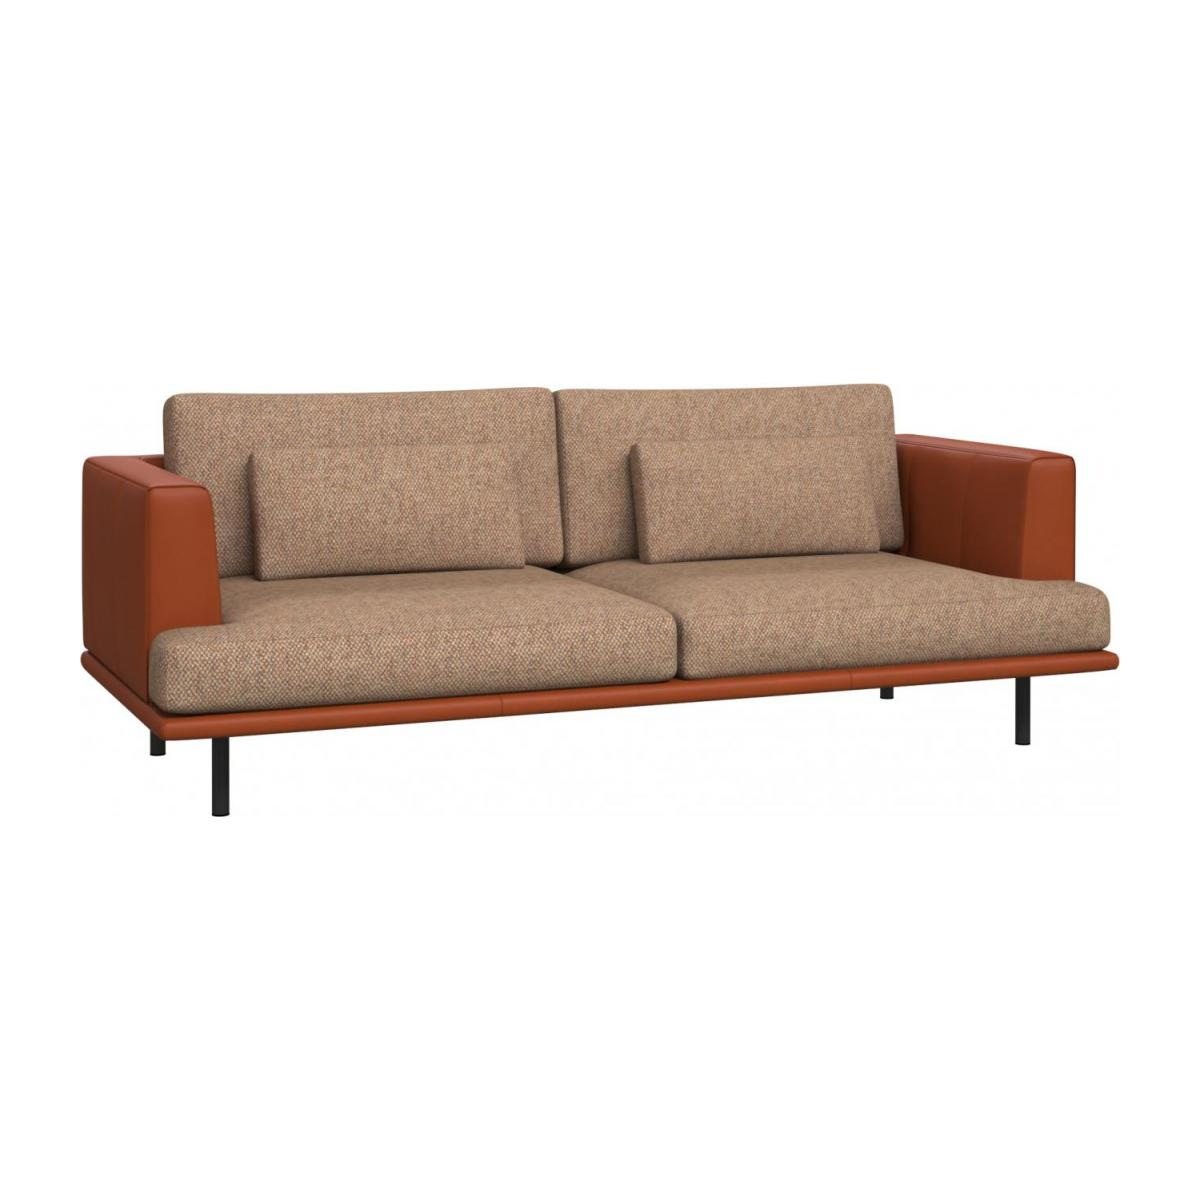 3 seater sofa in Bellagio fabric, passion orange with base and armrests in brown leather n°1